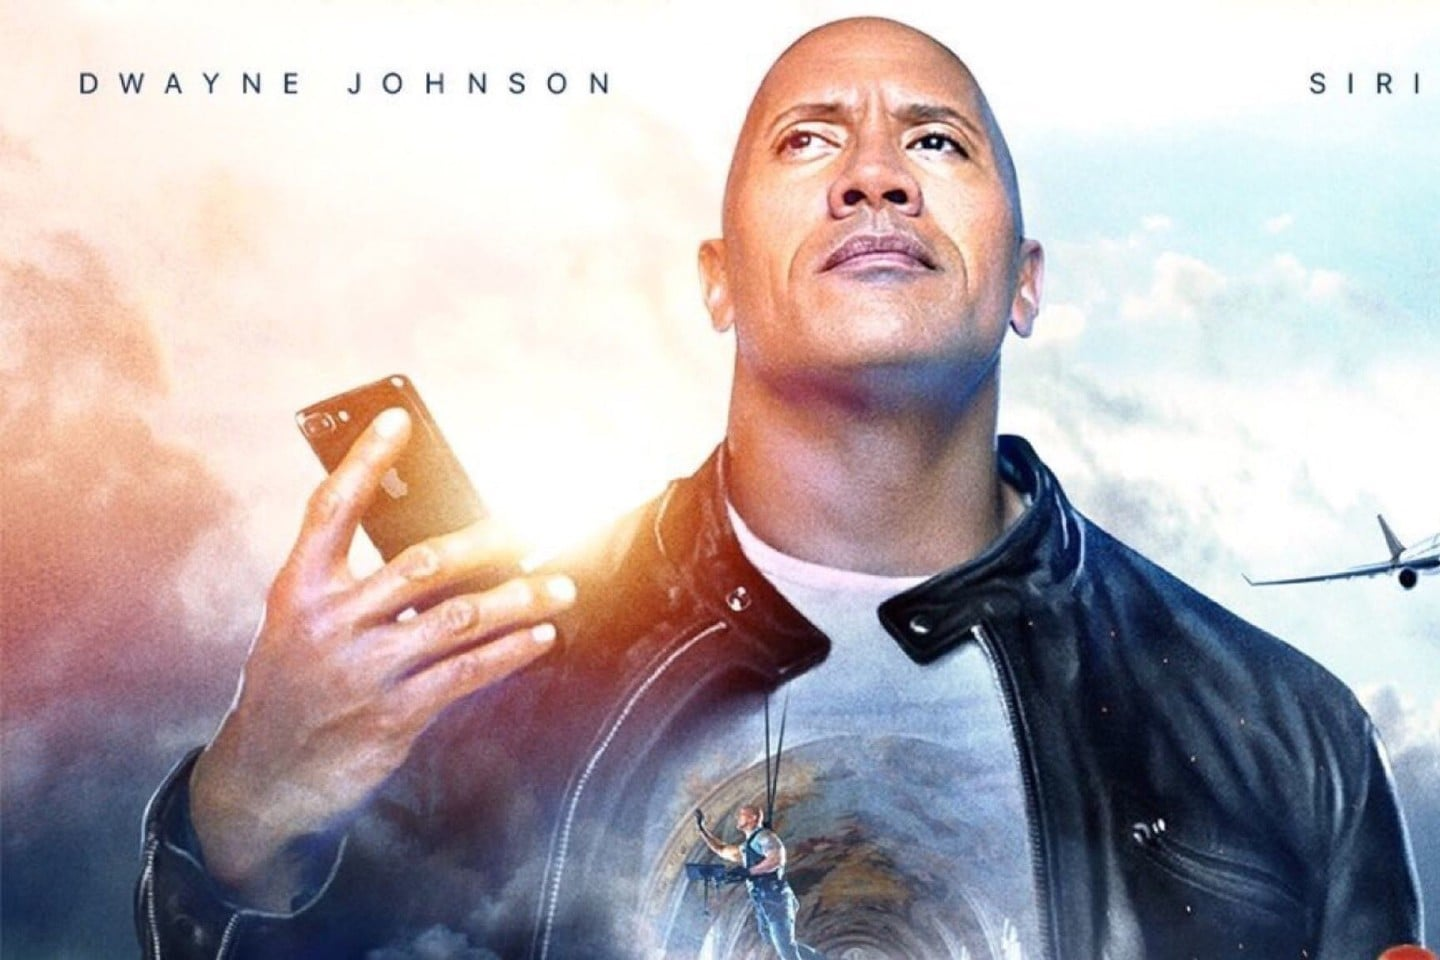 Apple partners w/ Dwayne 'The Rock' Johnson for new 'movie' co-starring Siri